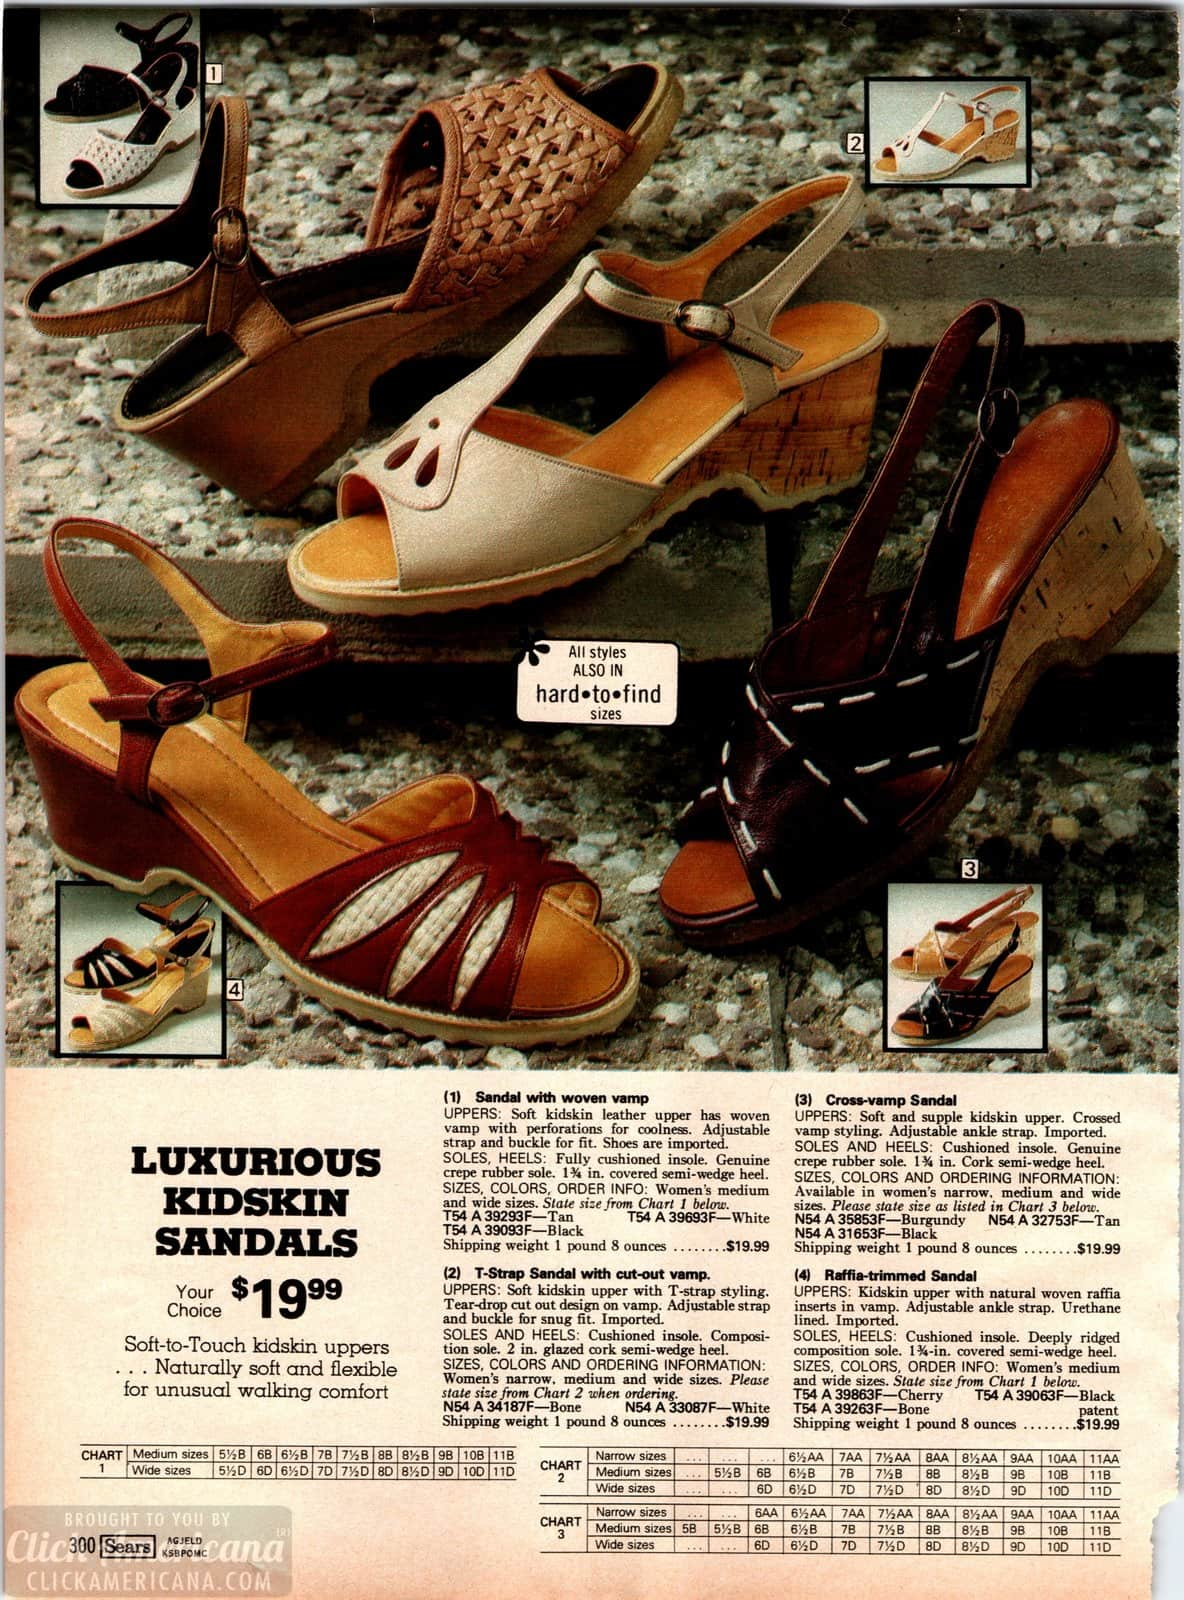 Luxurious 70s kidskin sandals with cross vamps, T-straps and ruffle trims plus cork sole